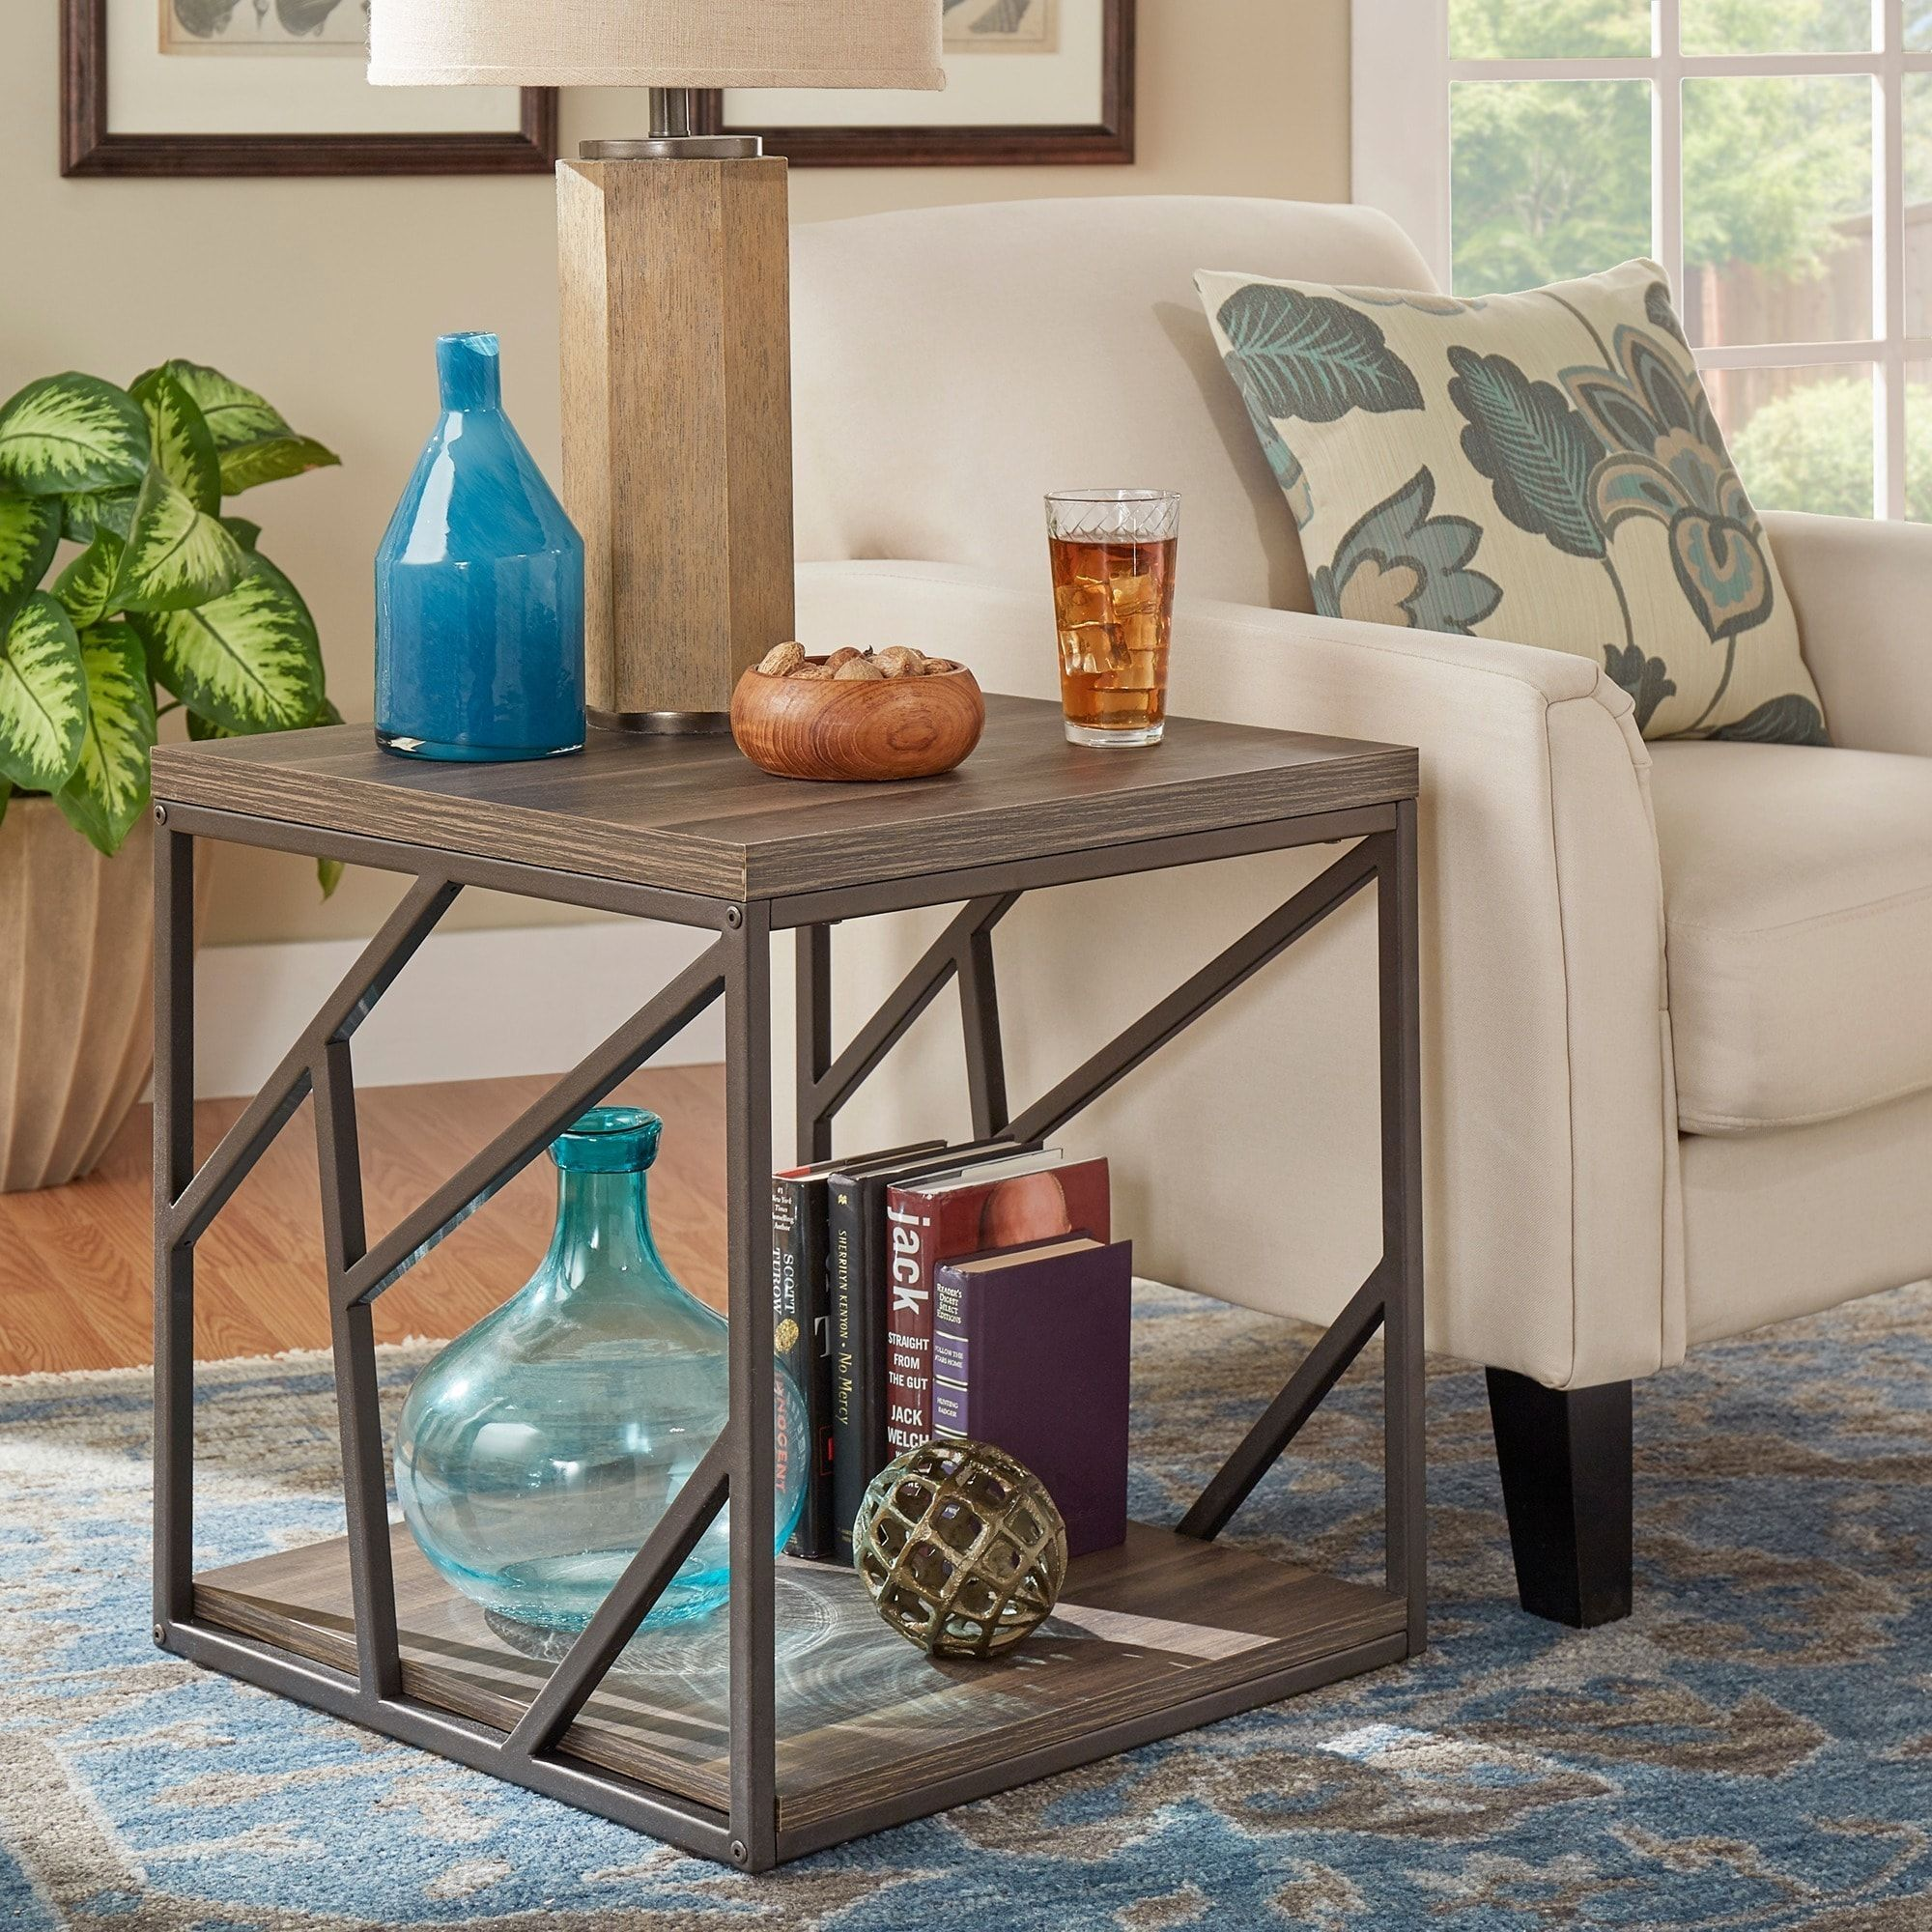 Lincoln Metal Contemporary Distressed Wood Coffee Table or Side